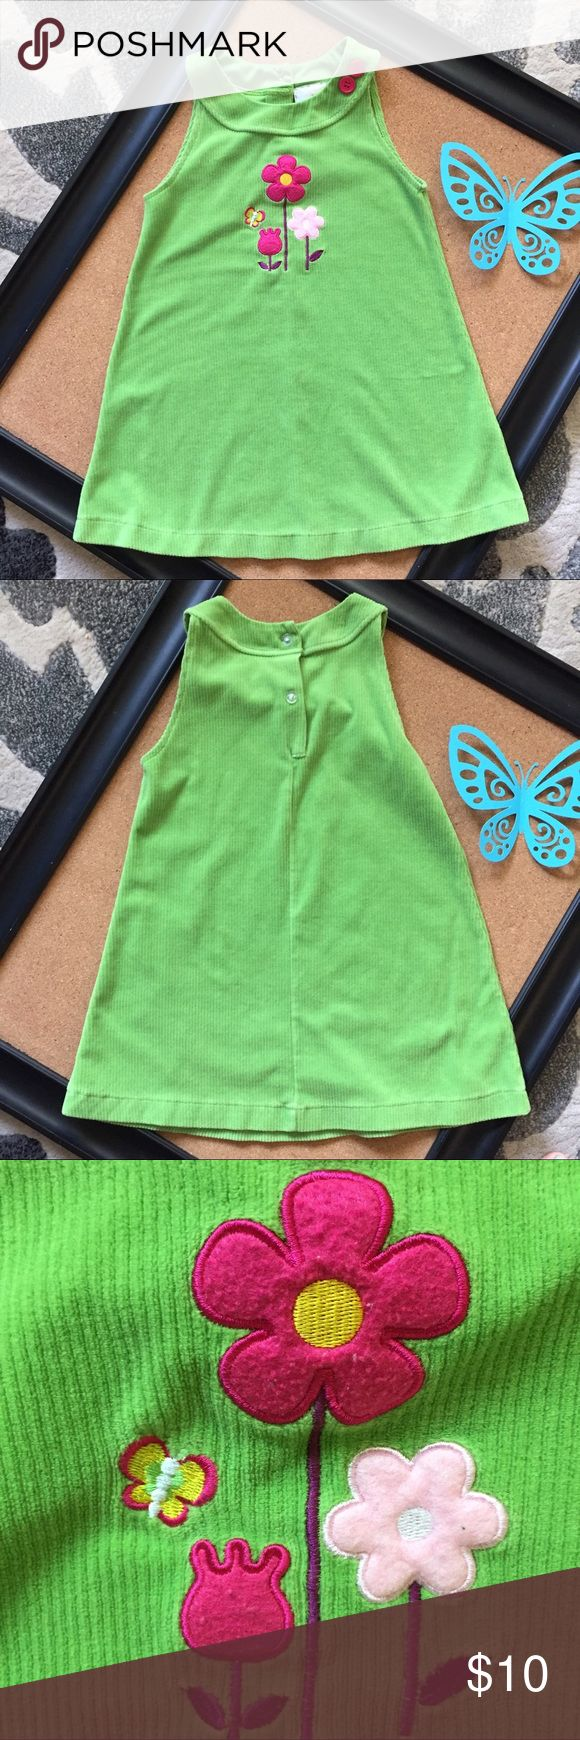 Rare Editions green corduroy dress sz 6 Rare editions soft light weight cotton/polyester corduroy lime green dress floral appliqué on front and 3 buttons on back . Sz 6 Rare Editions Dresses Casual